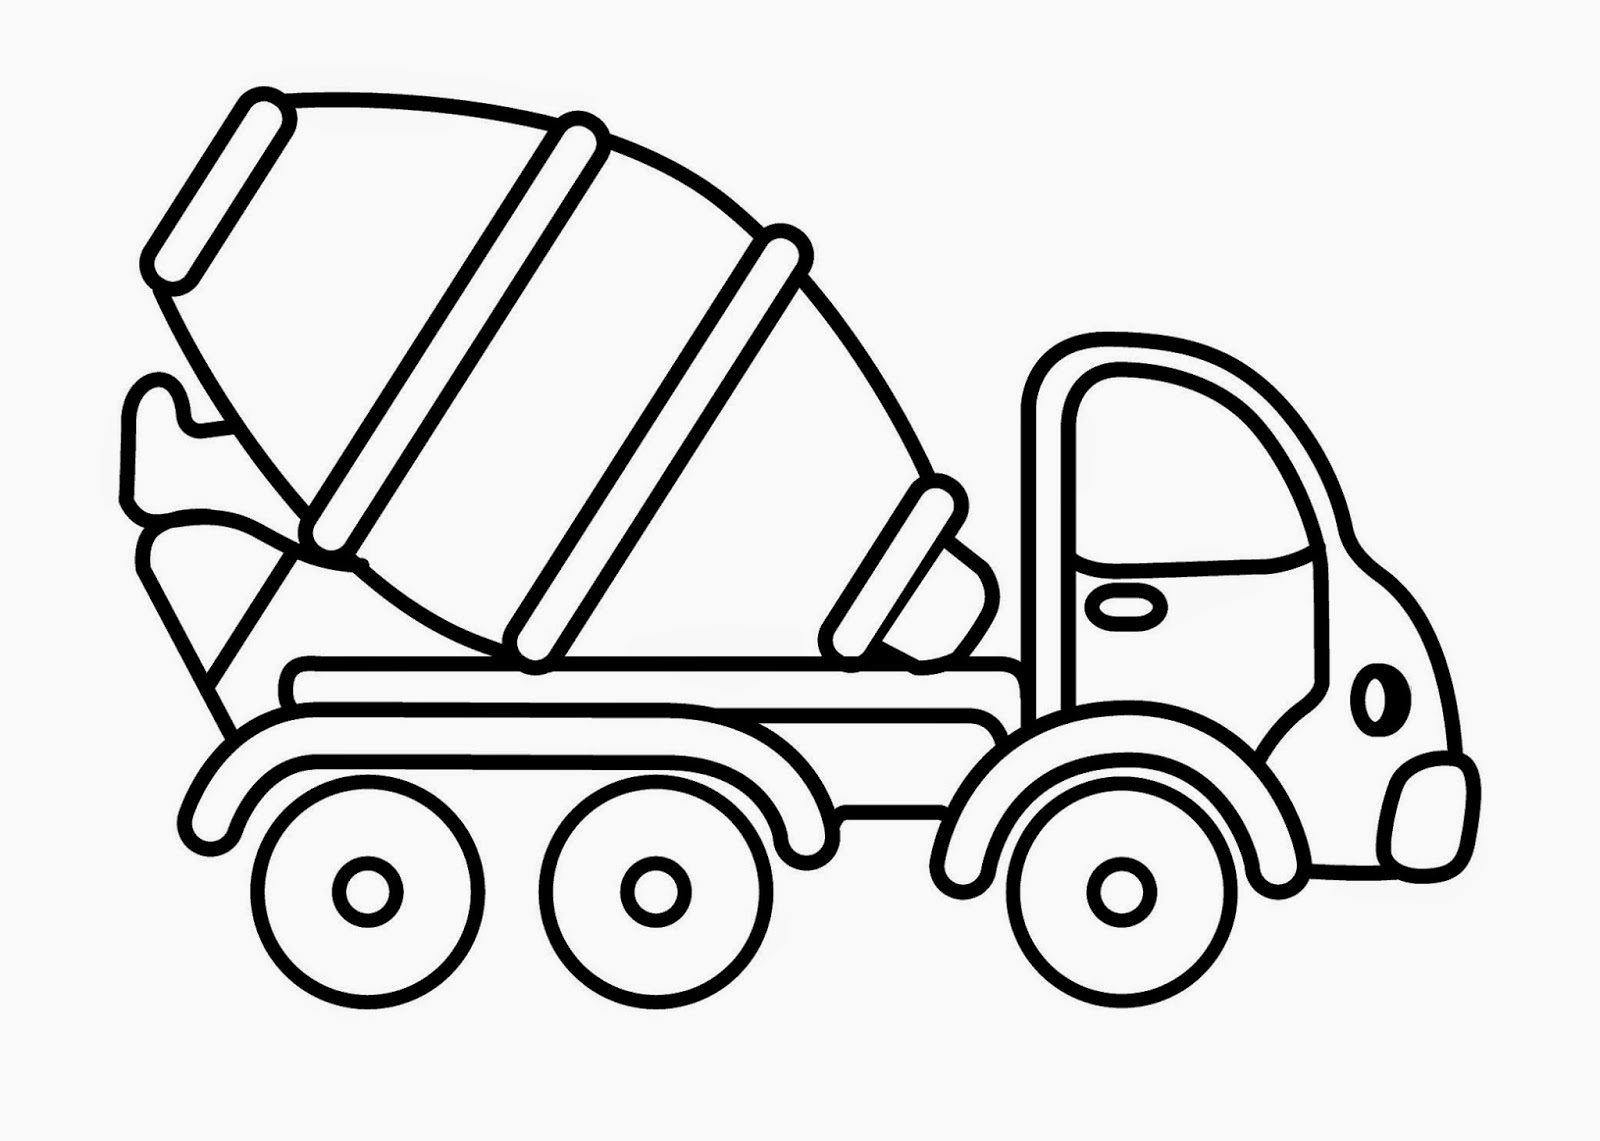 tonka vehicle coloring pages - photo #45